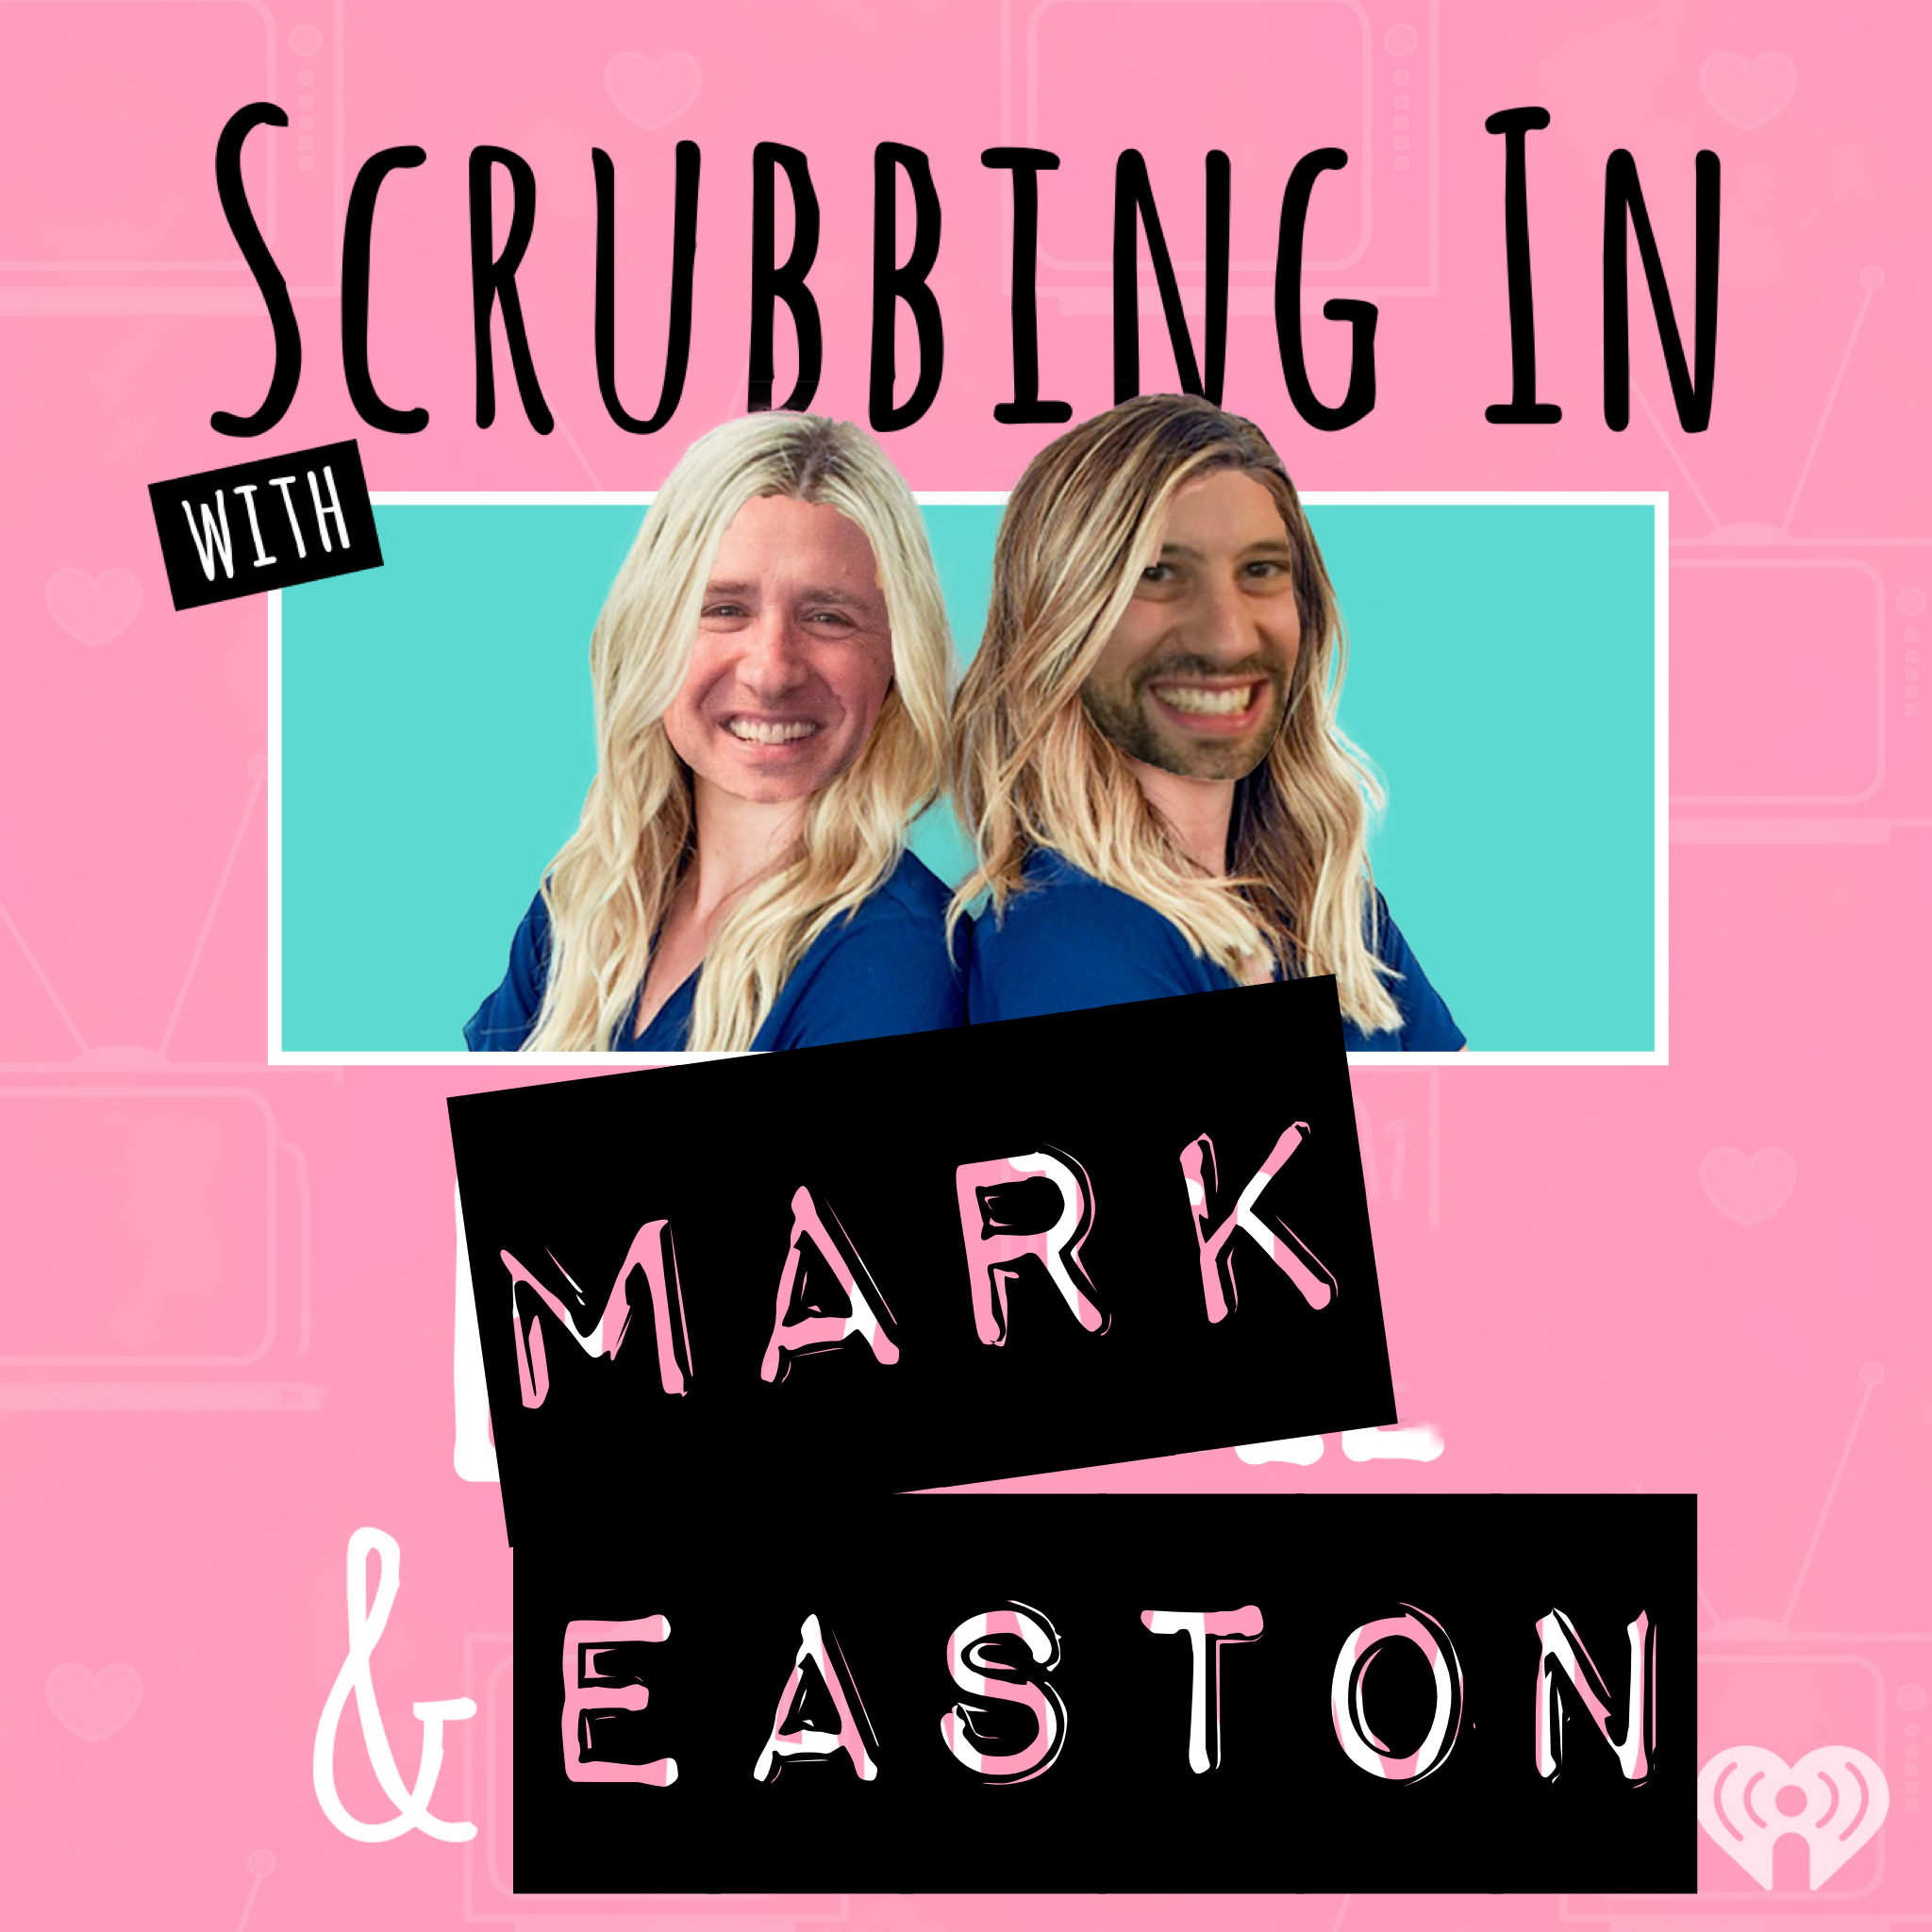 The Mark & Easton Show